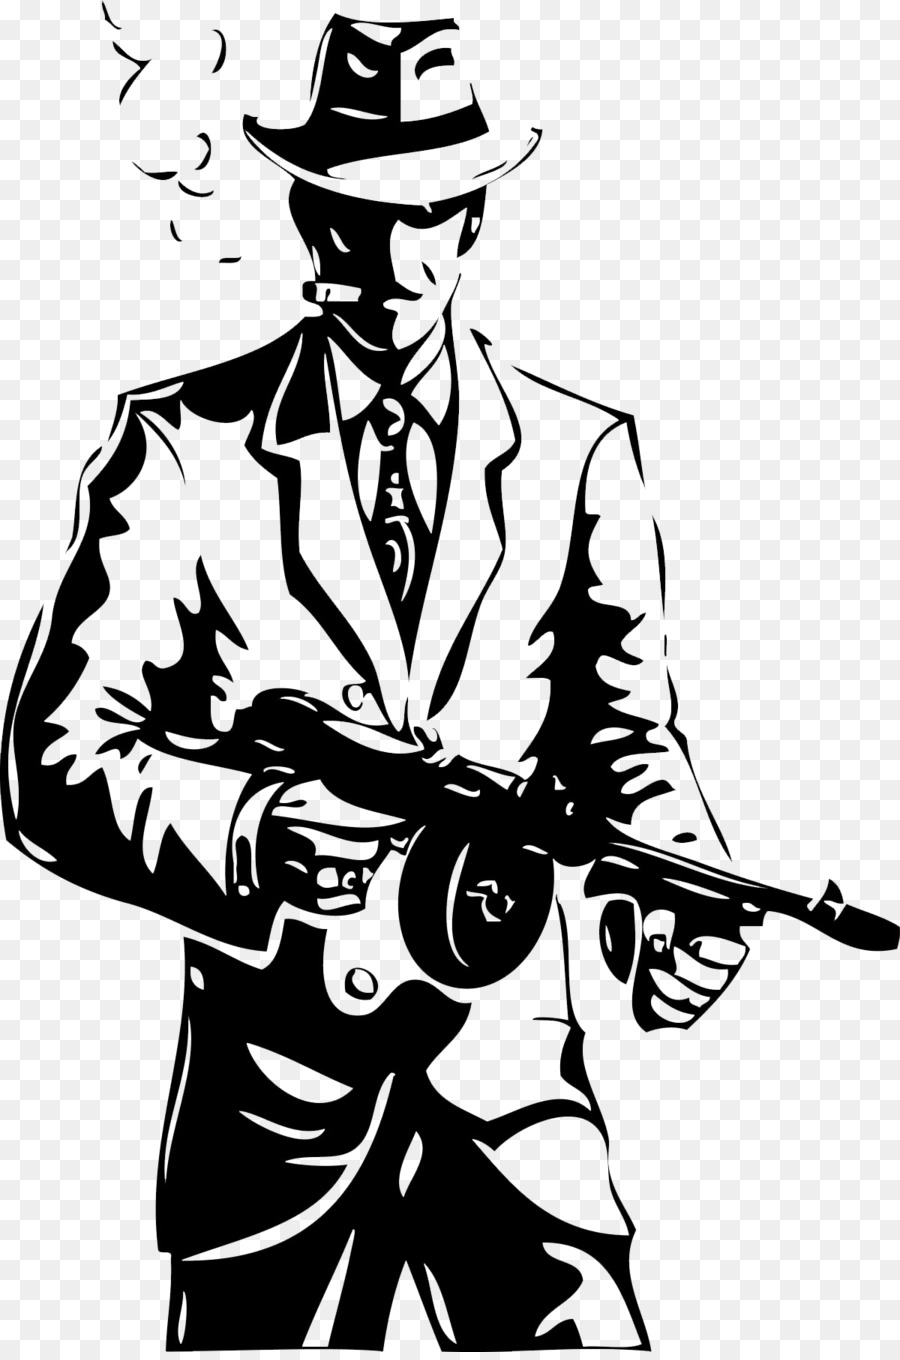 900x1360 Vector Graphics Drawing Gangster Illustration Image